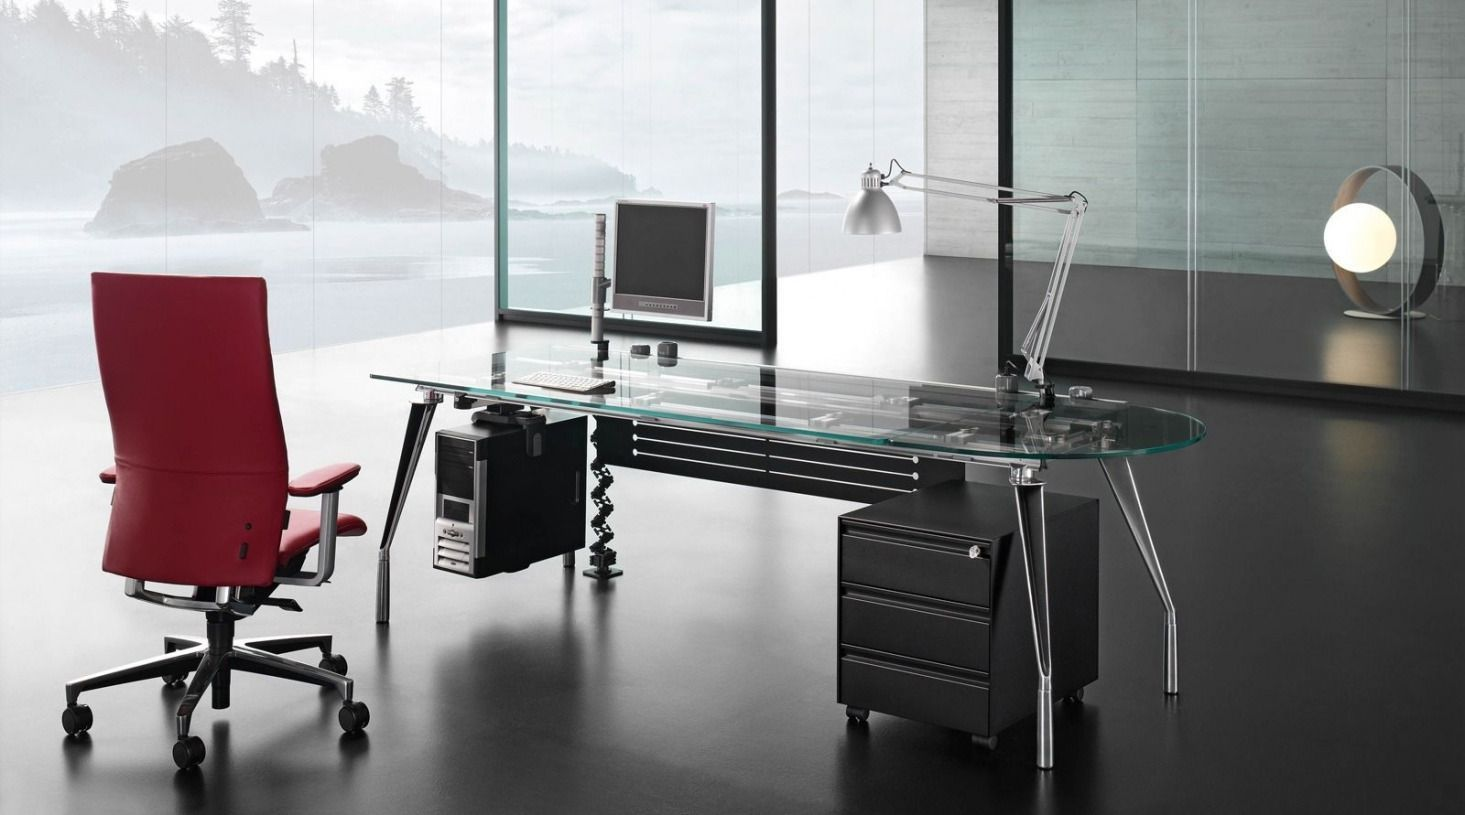 2018 Modern Glass Office Desk Best Home Office Furniture Check More At Adidasj Adidas In 2020 Best Home Office Desk Office Desk Designs Office Desk